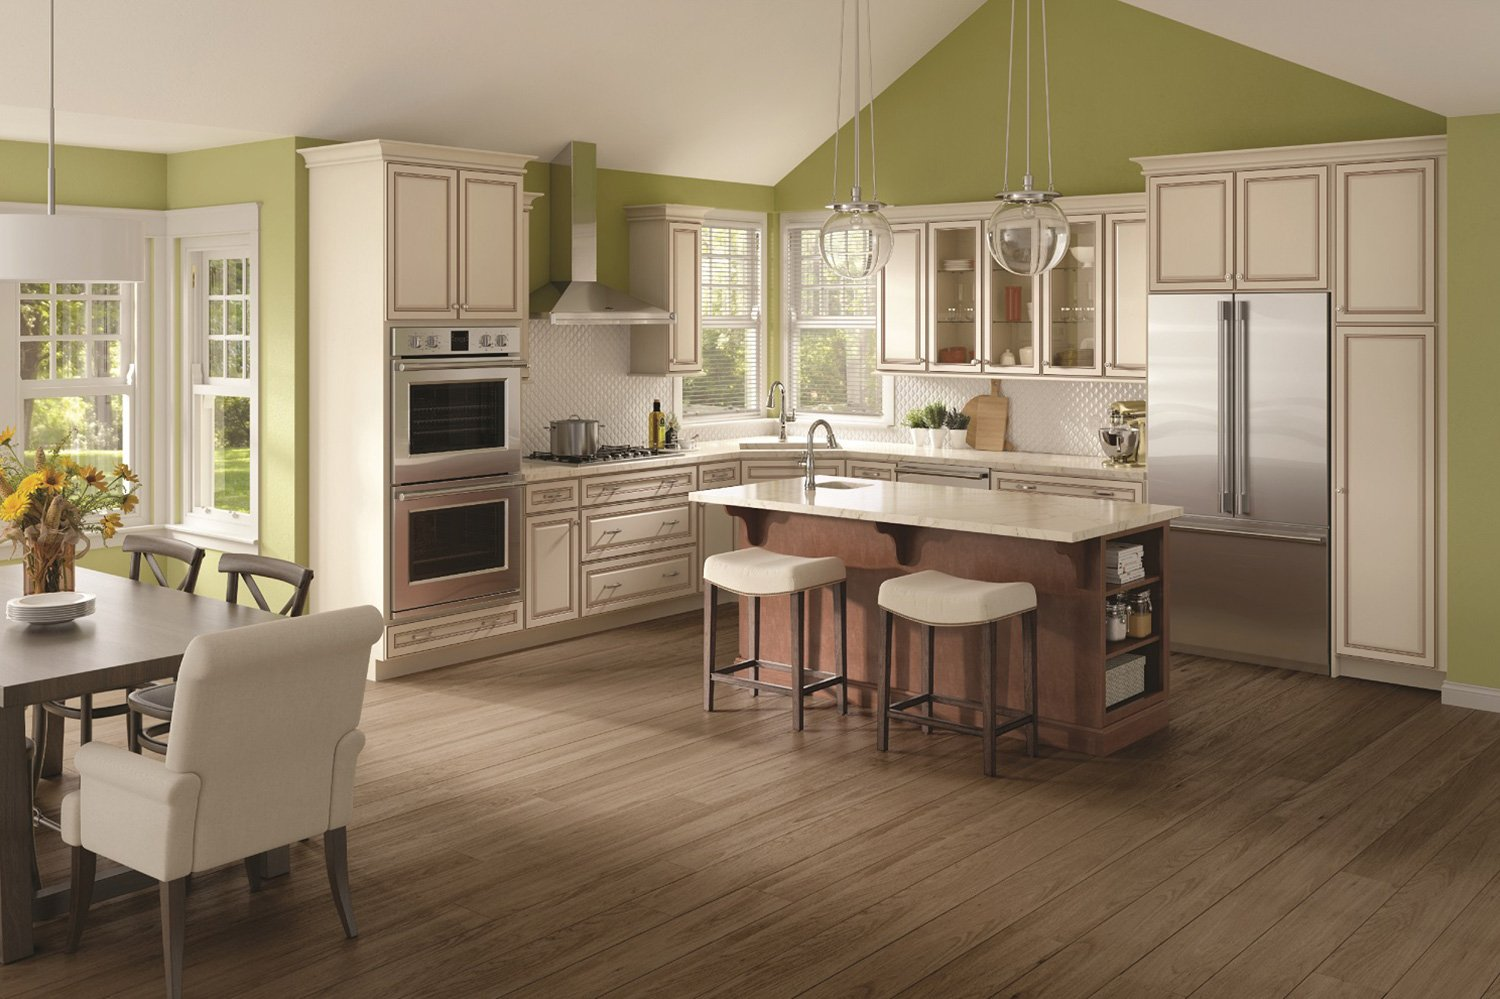 Superieur Kitchen Design